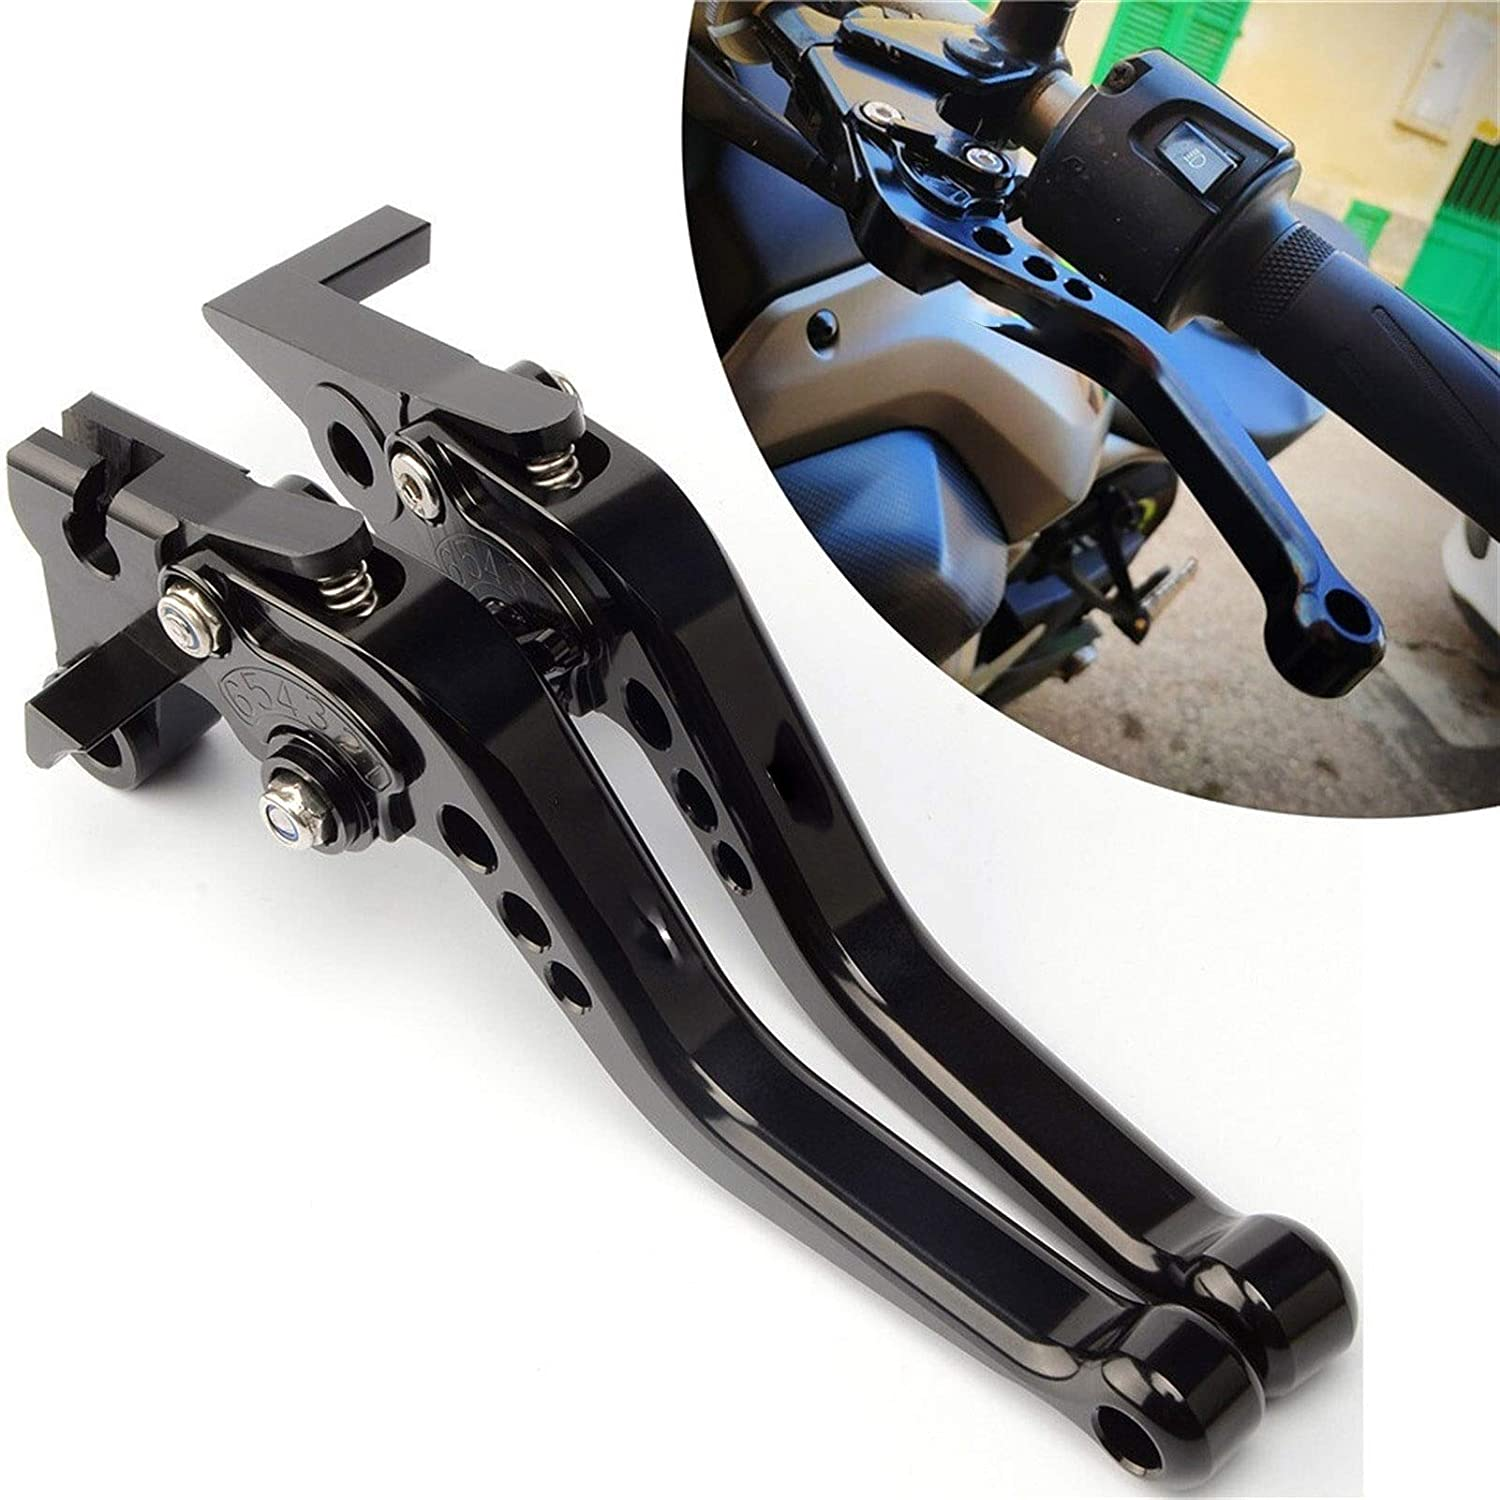 Color : XSR700 Black Motorcycle Ornamental Mouldings Motorcycle Short Levers Fit For Yamaha XSR700 XSR900 XSR Xsr 700 900 Adjustable Brake Clutch Levers